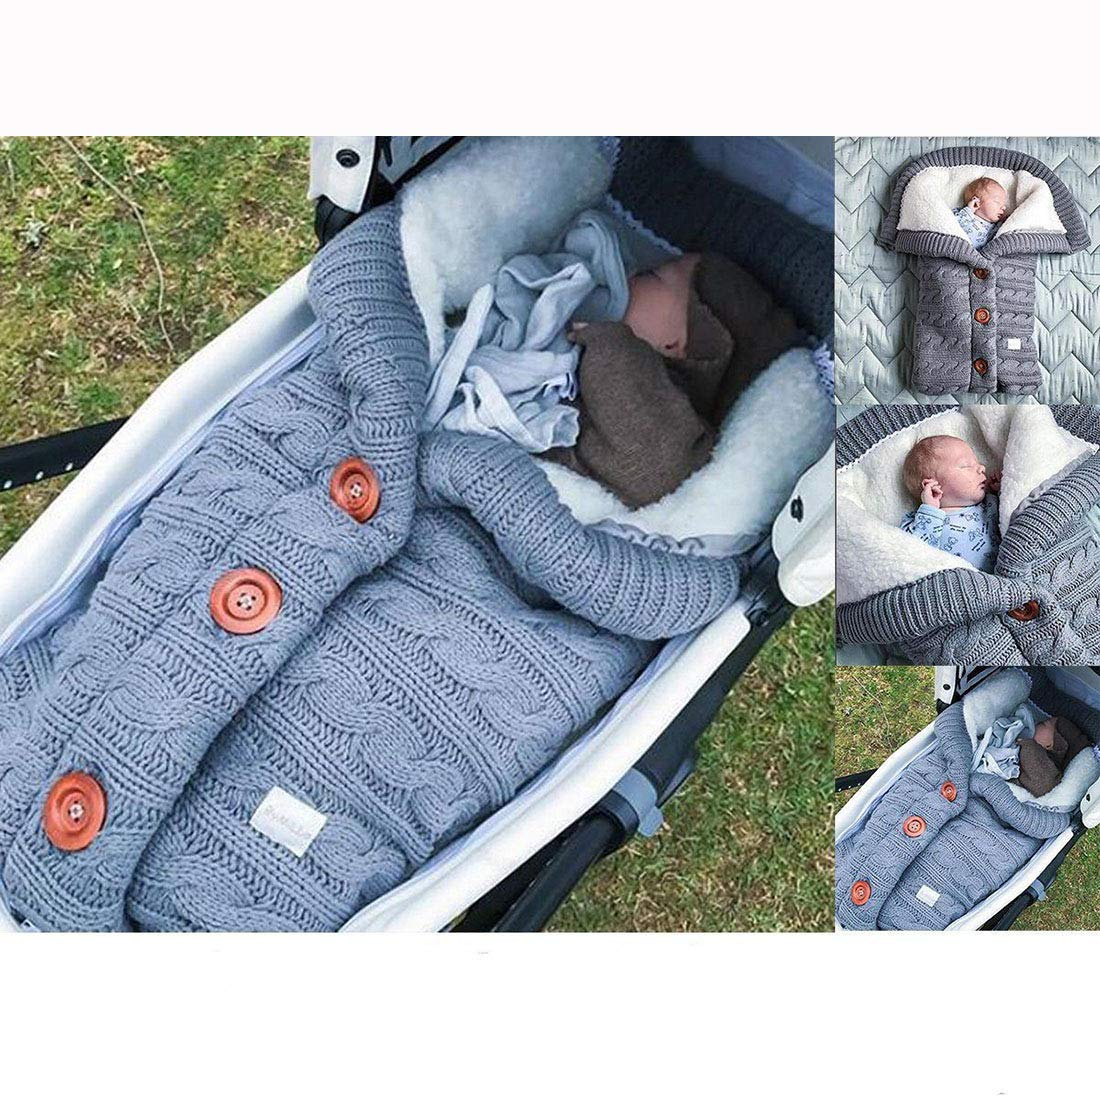 Button Sleeping Bag Baby Outdoor Baby Stroller Sleeping Bag Wool Knit Plus Velvet Thick Warm